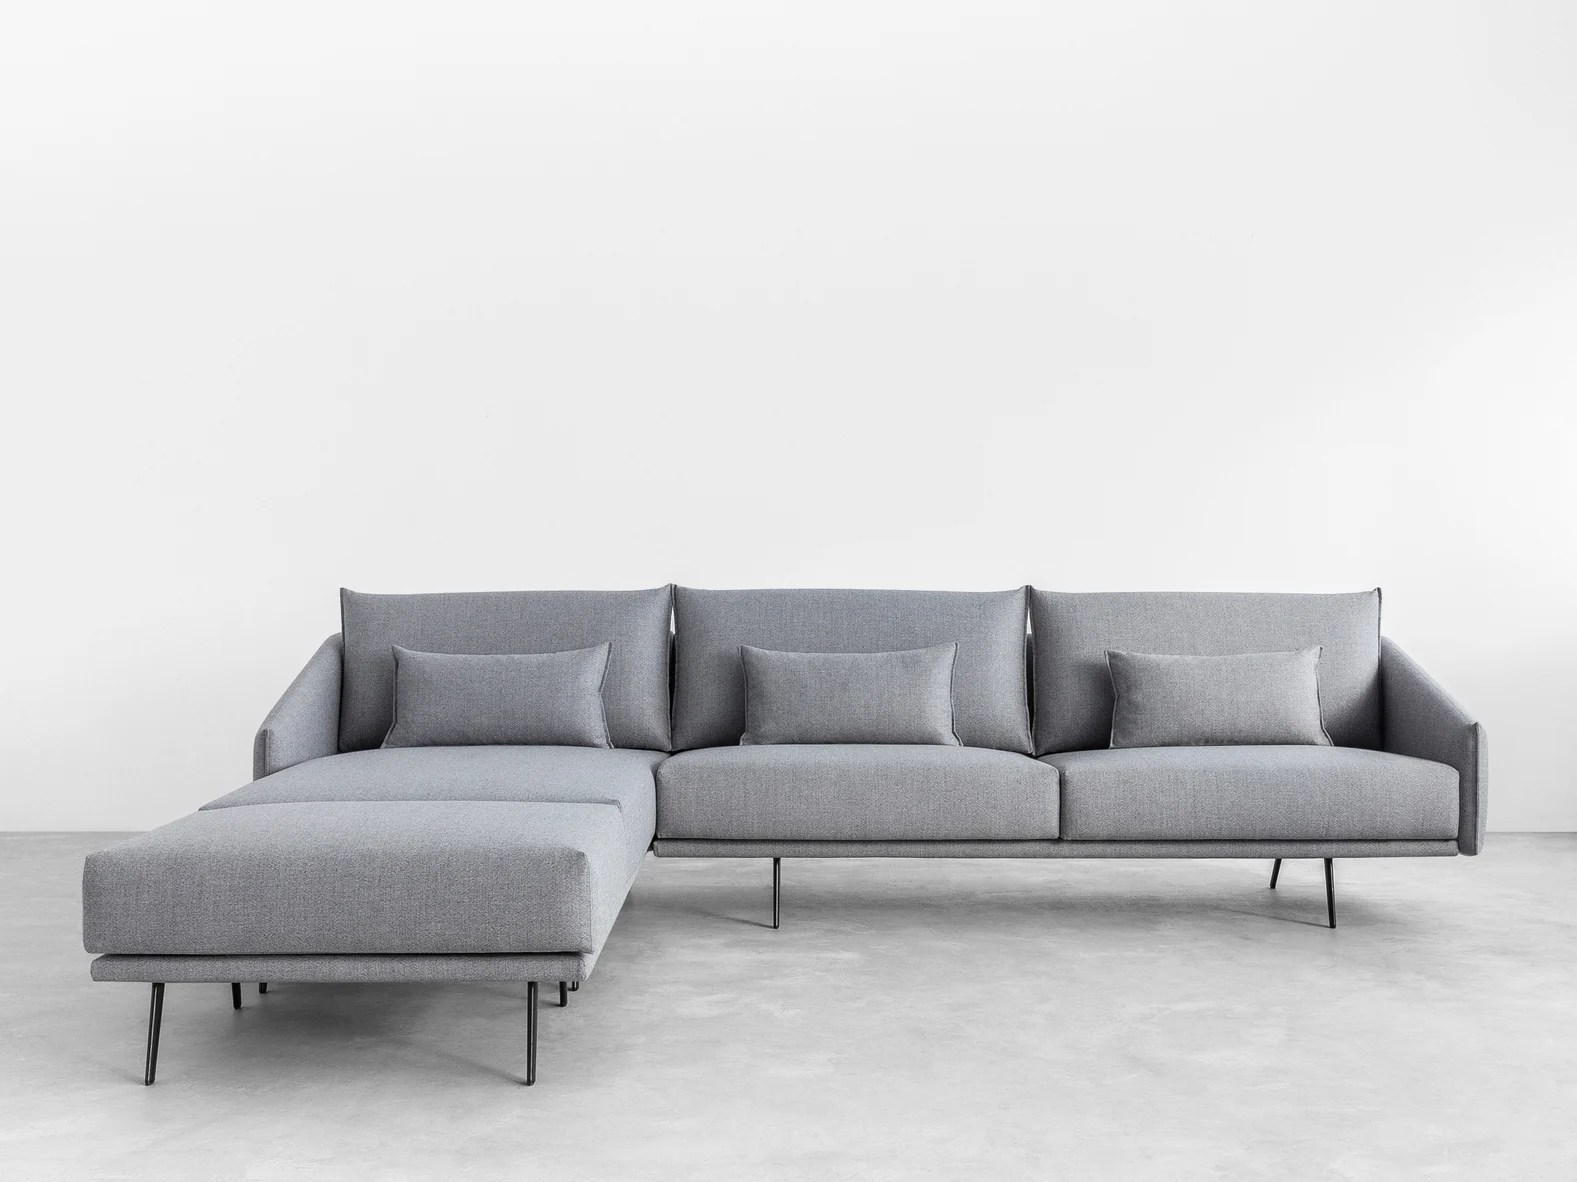 chaise longue fabric sofa lazy boy collins costura with collection by stua